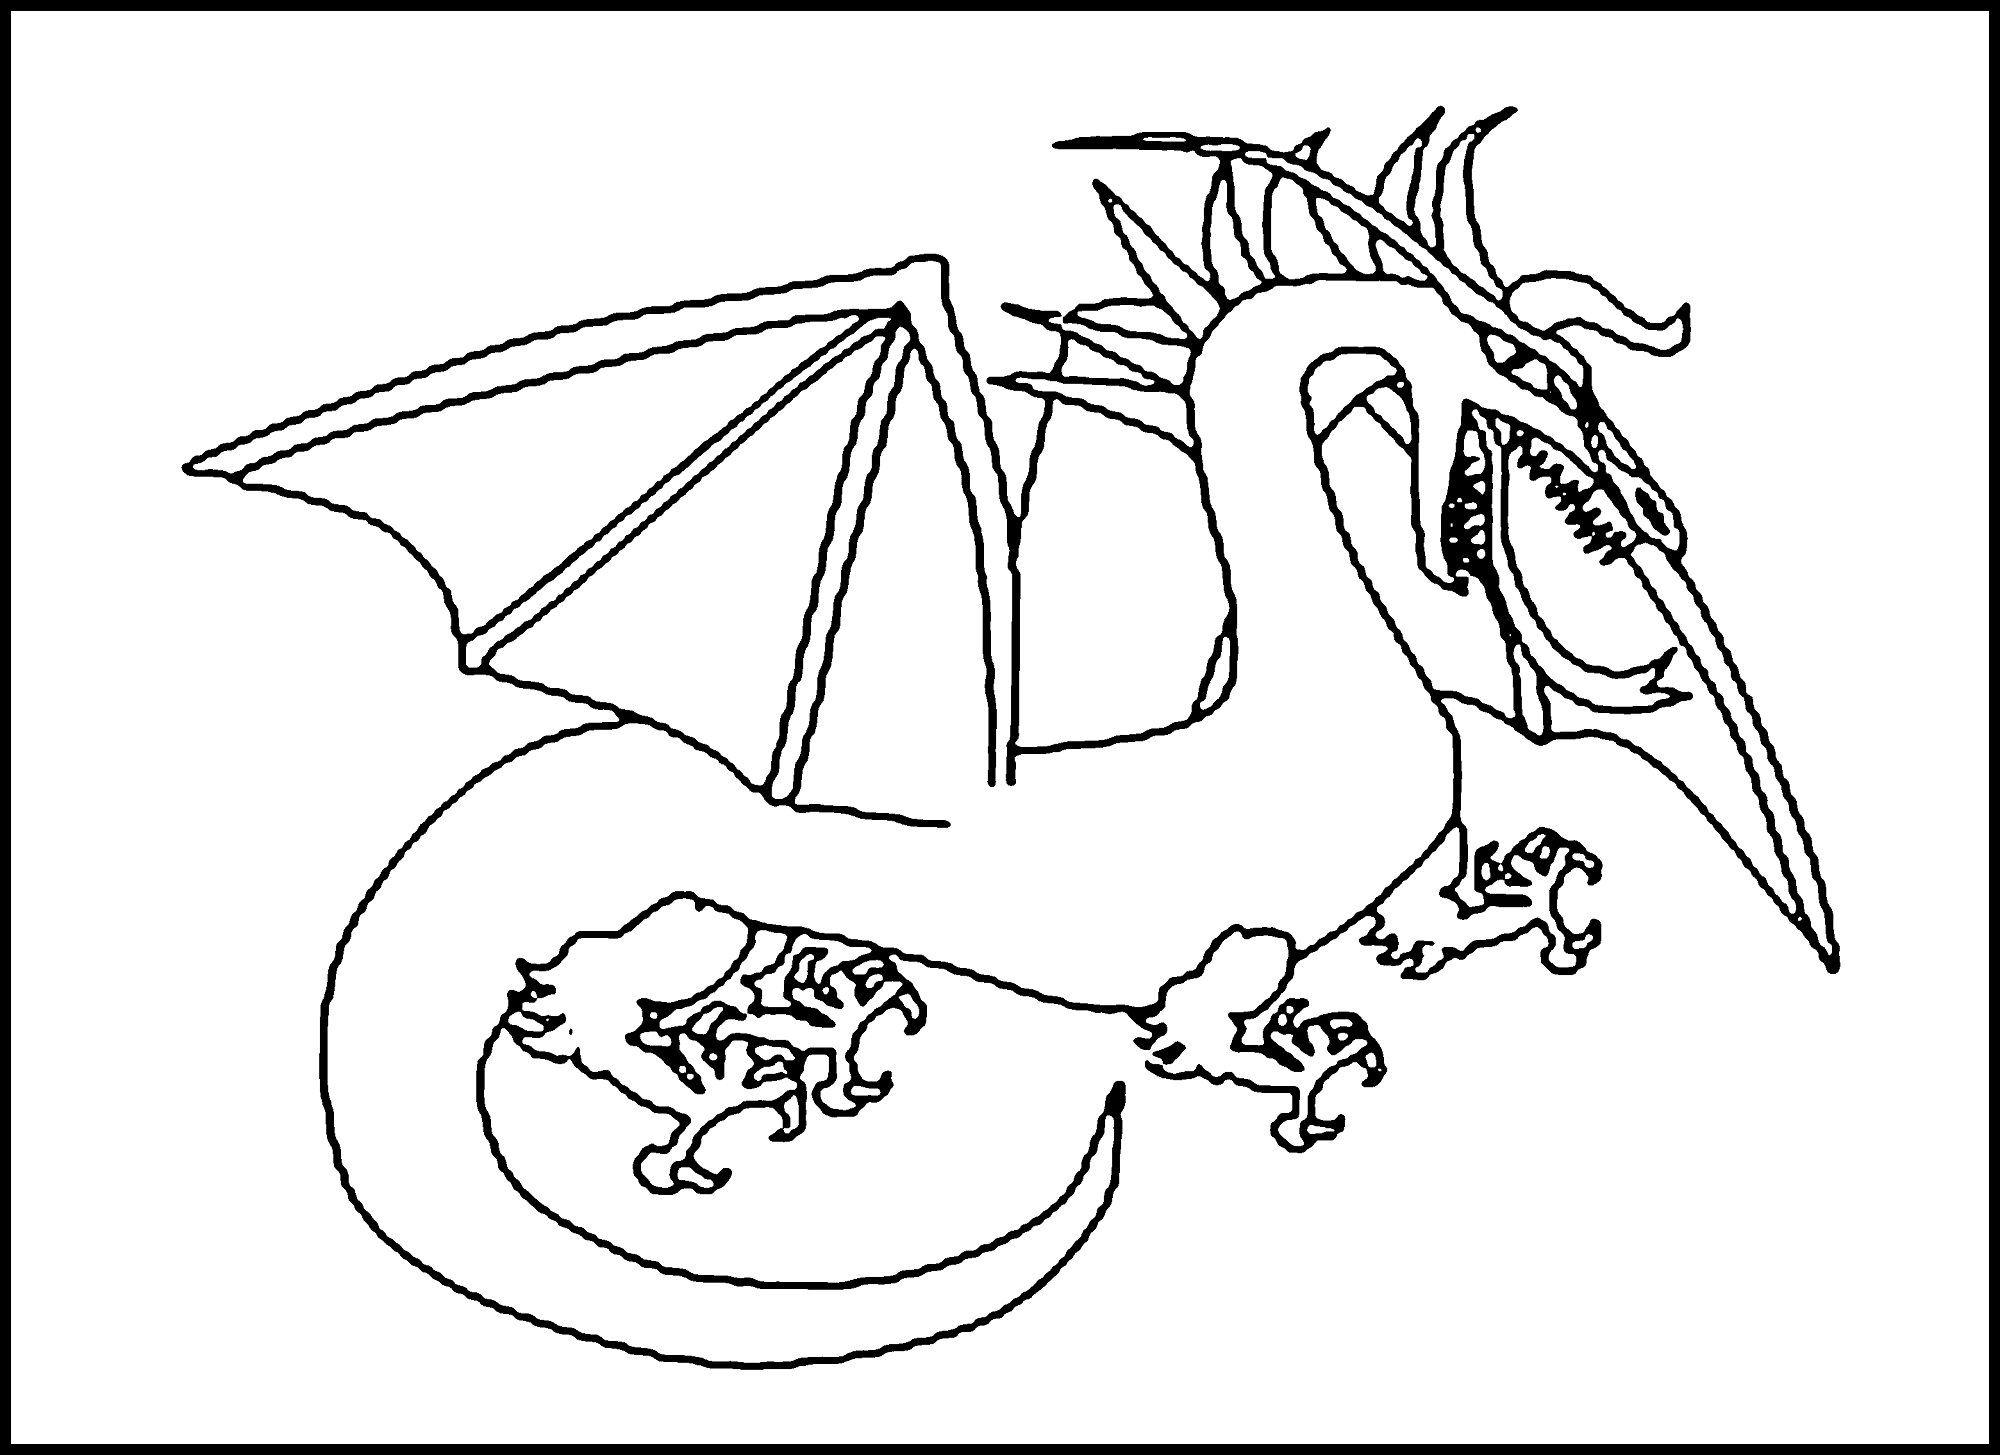 dragon pictures to color and print chinese dragon coloring pages to download and print for free and dragon to print pictures color